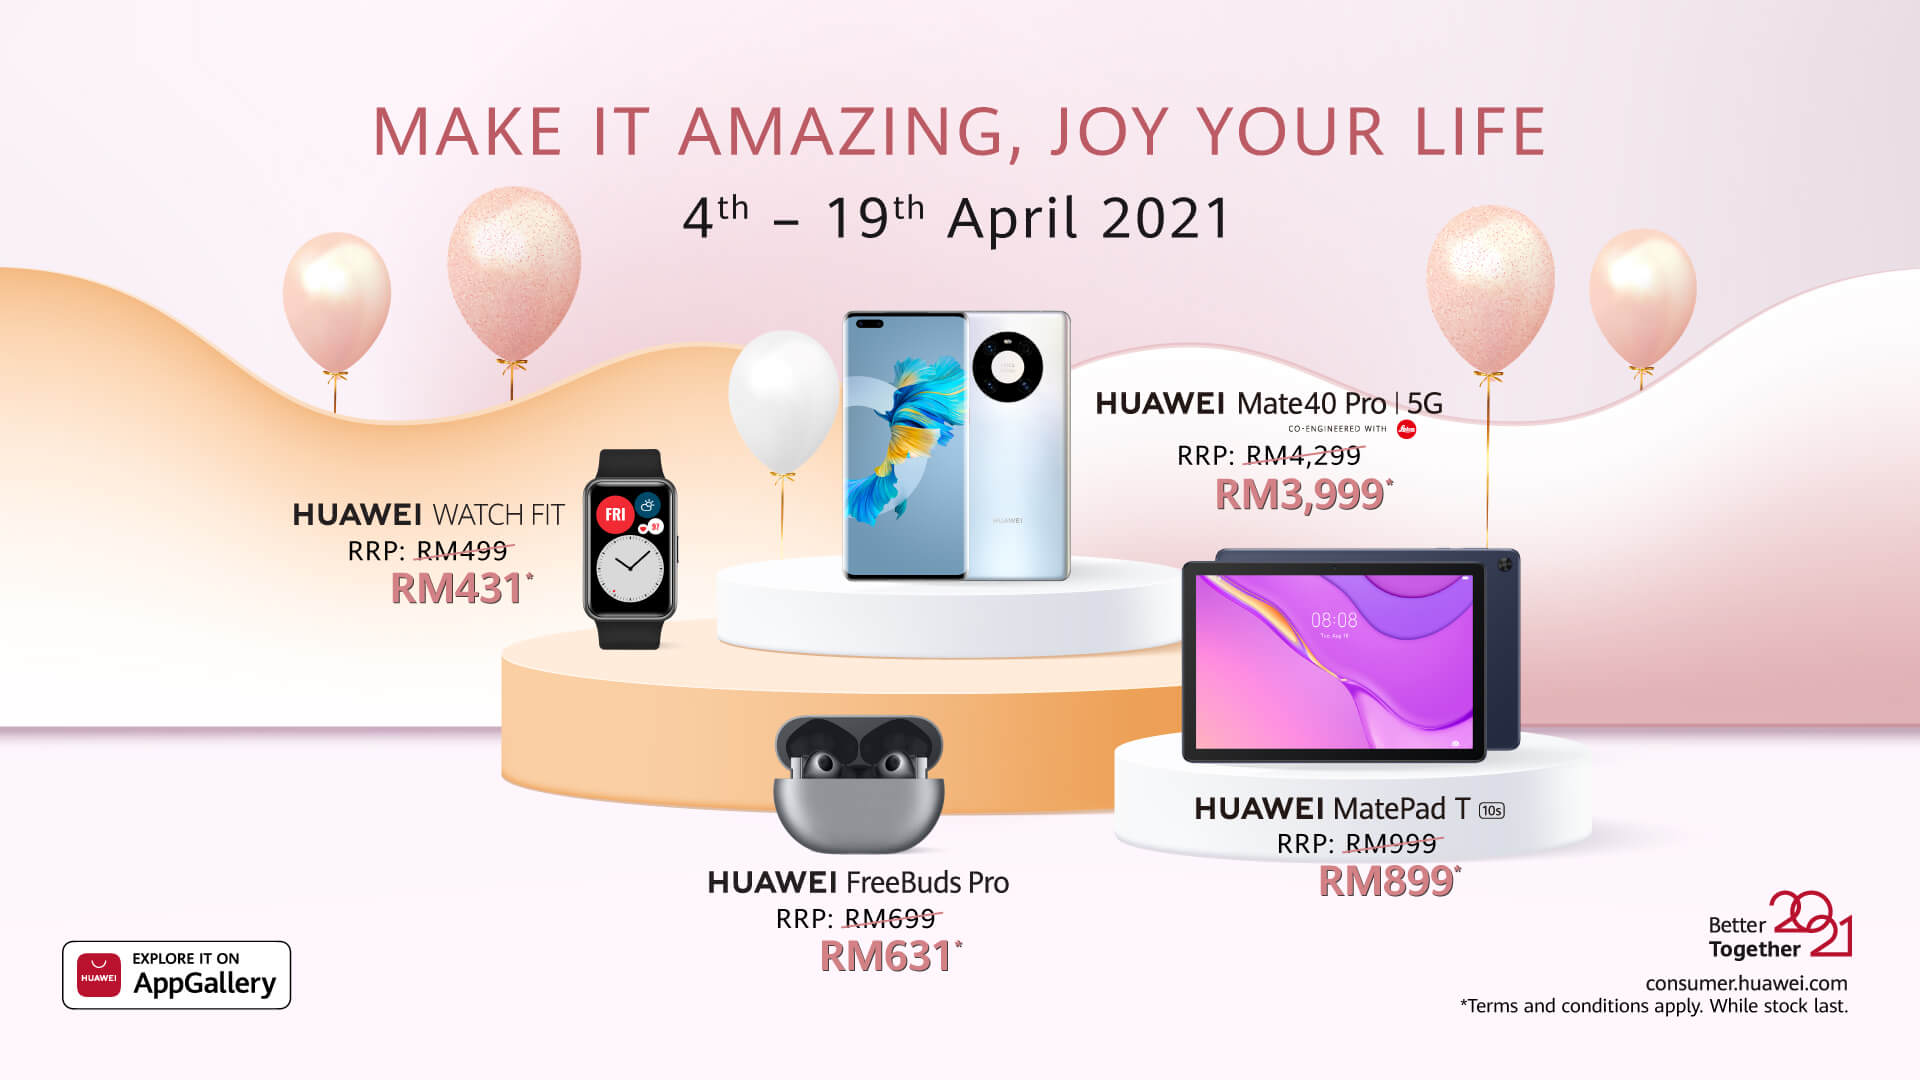 Huawei Make it Amazing list